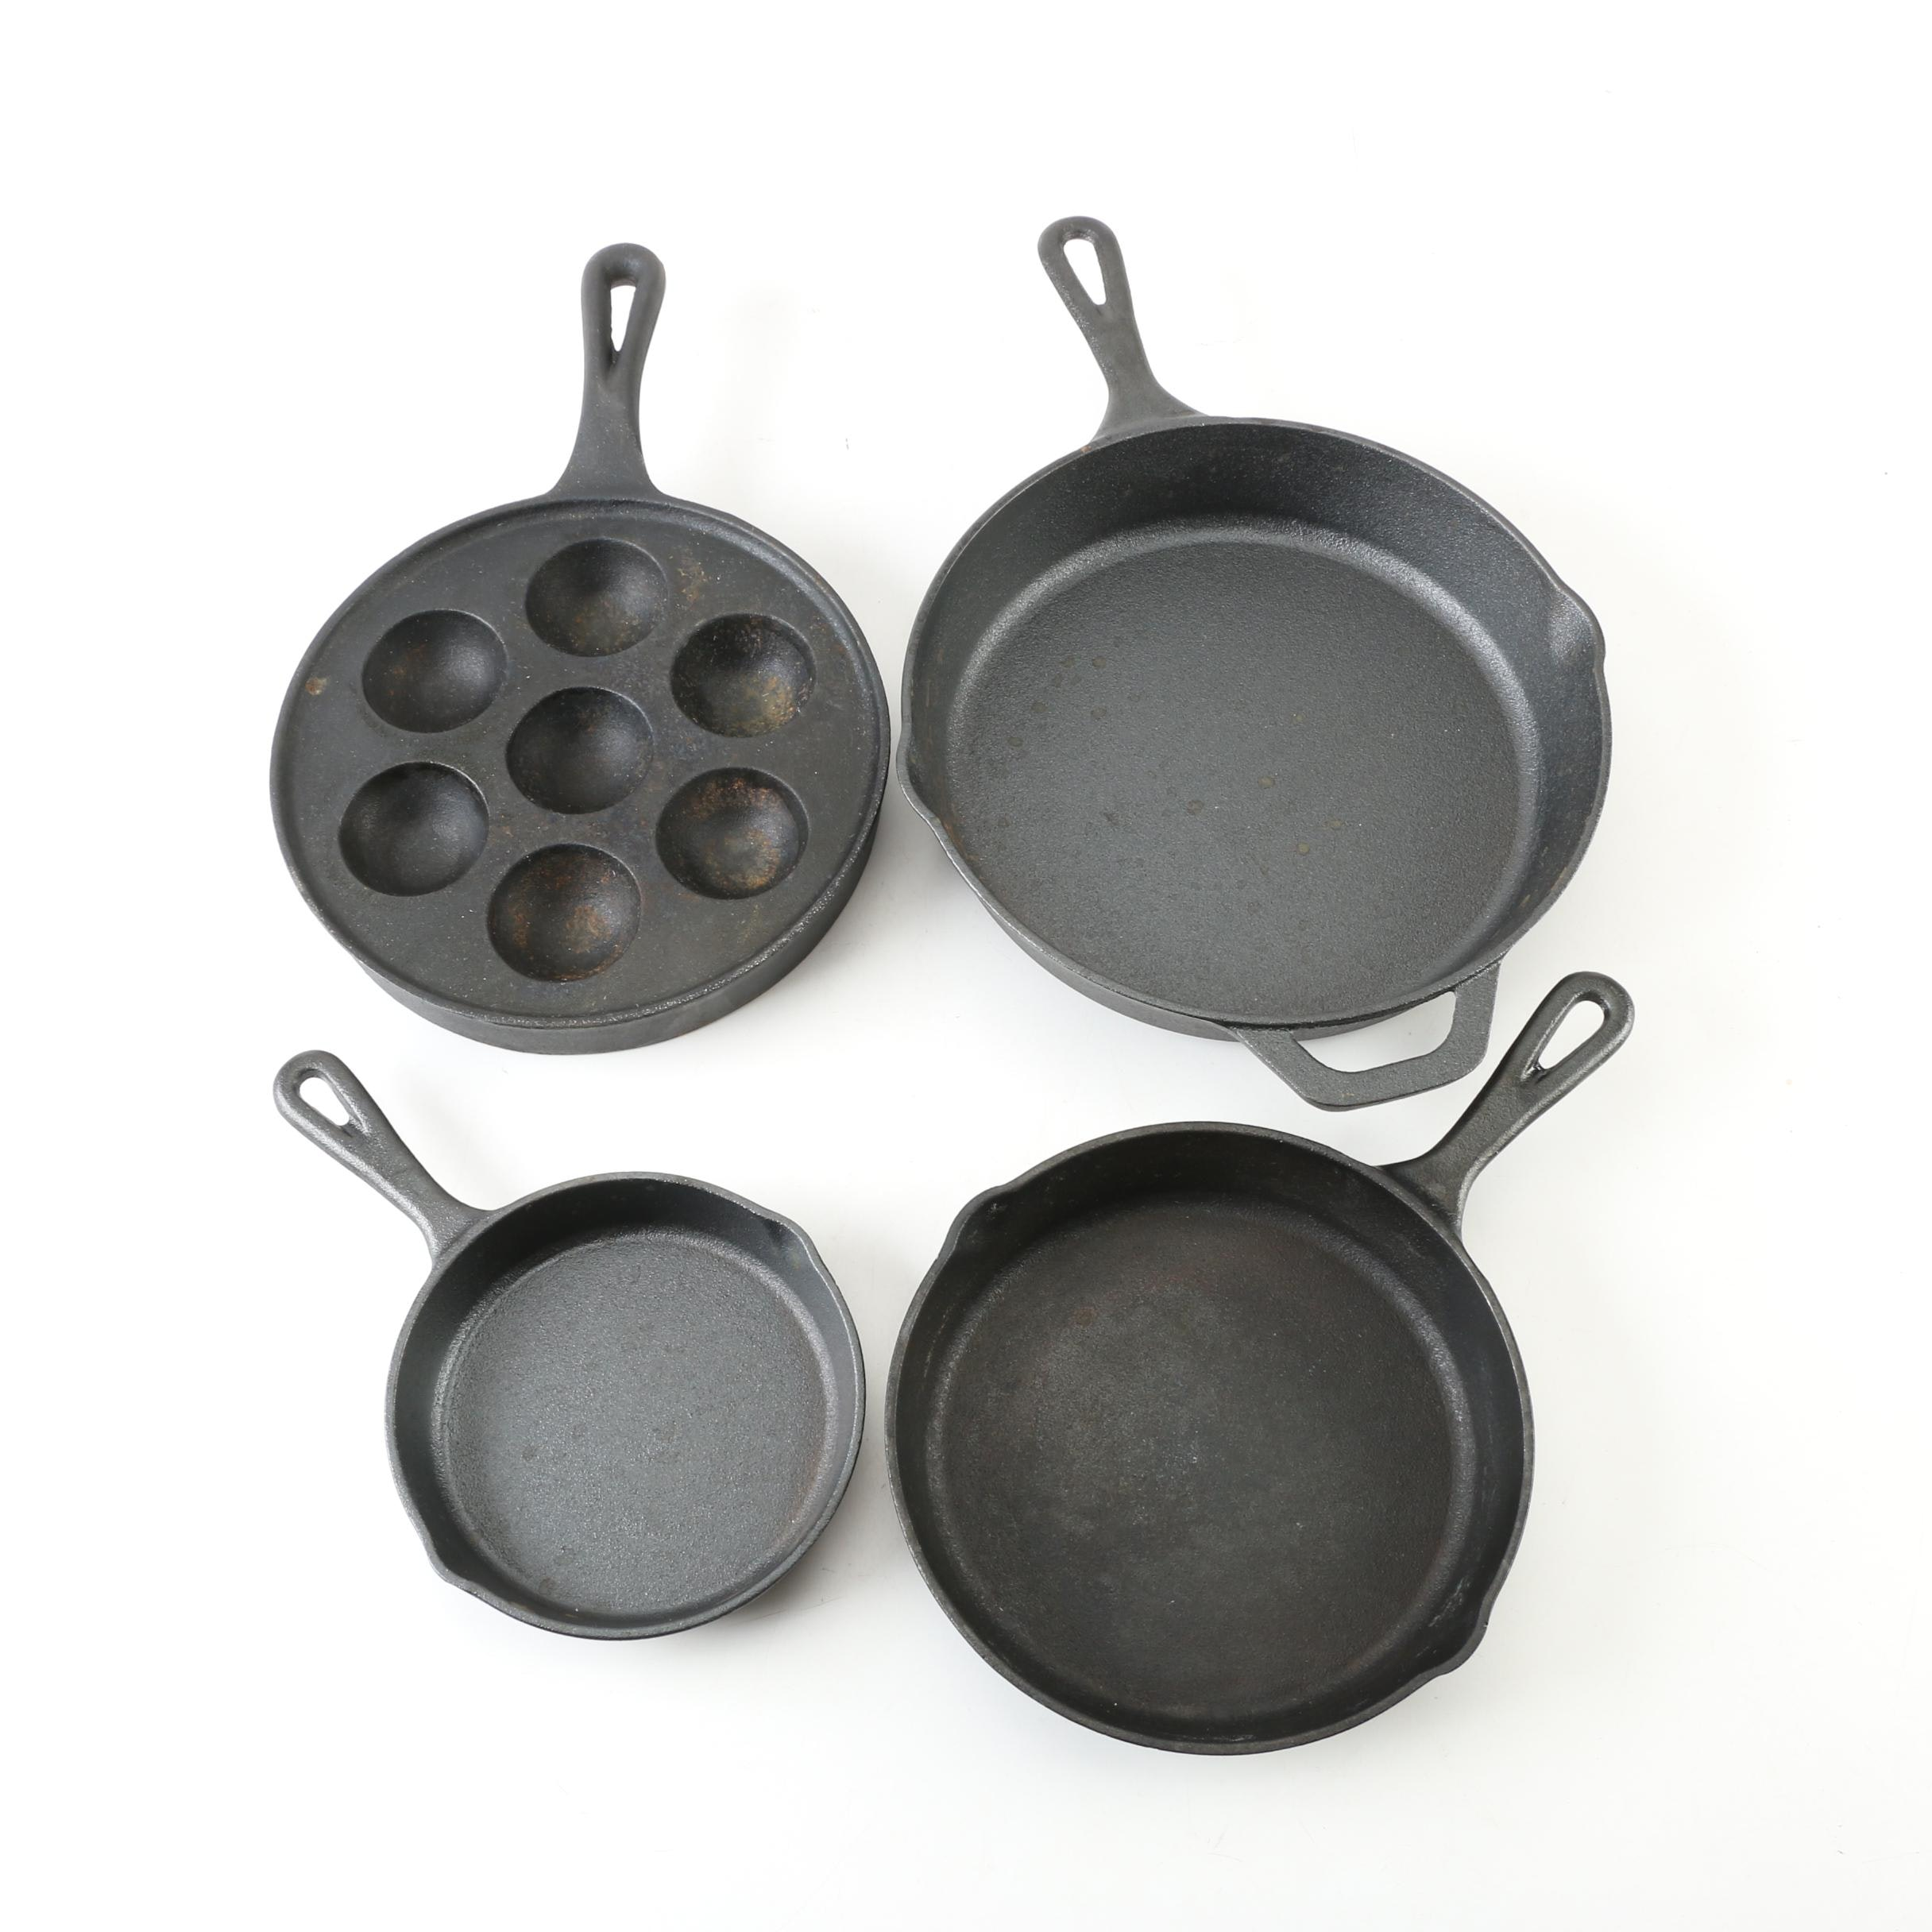 Kookantage Cast Iron Skillets and Egg Poacher